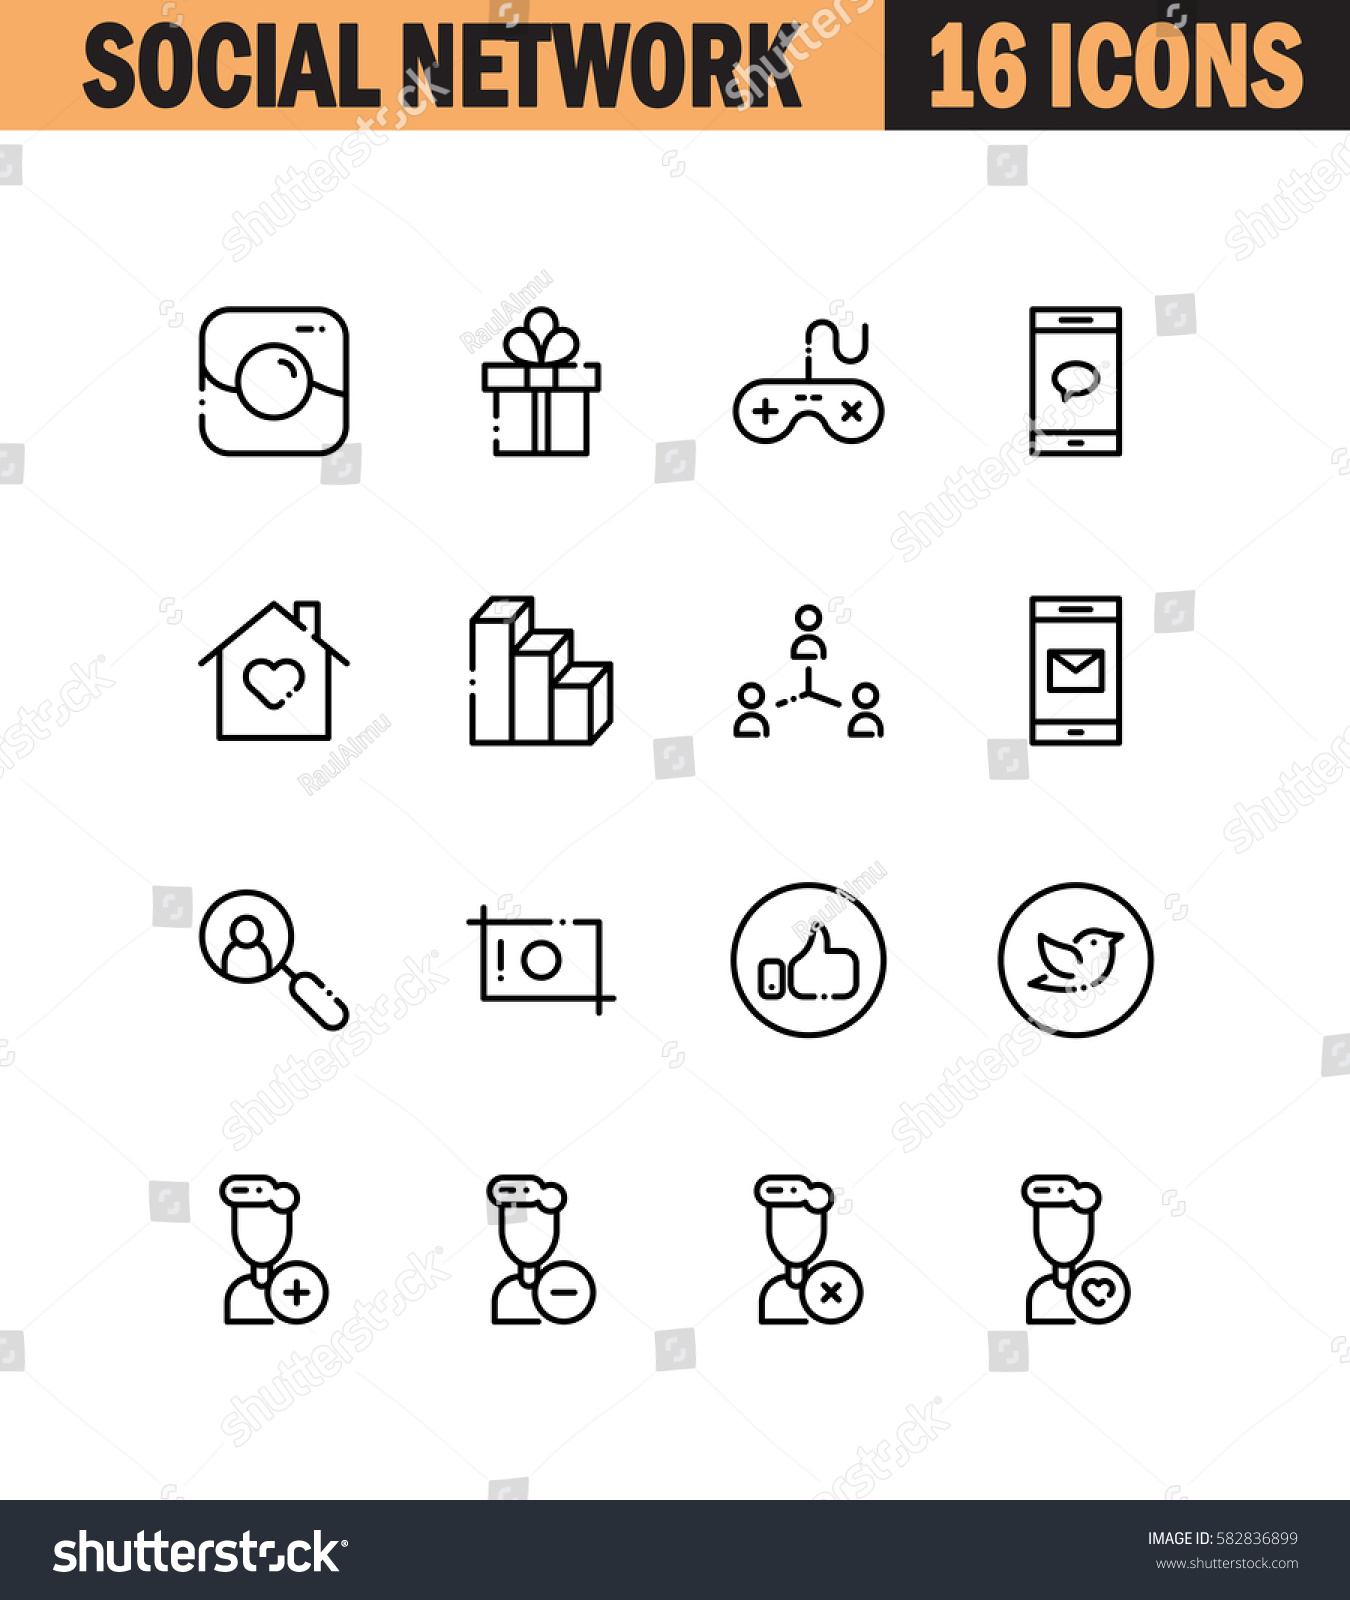 Social network flat icon set collection stock vector 582836899 collection of high quality outline symbols for web design biocorpaavc Gallery